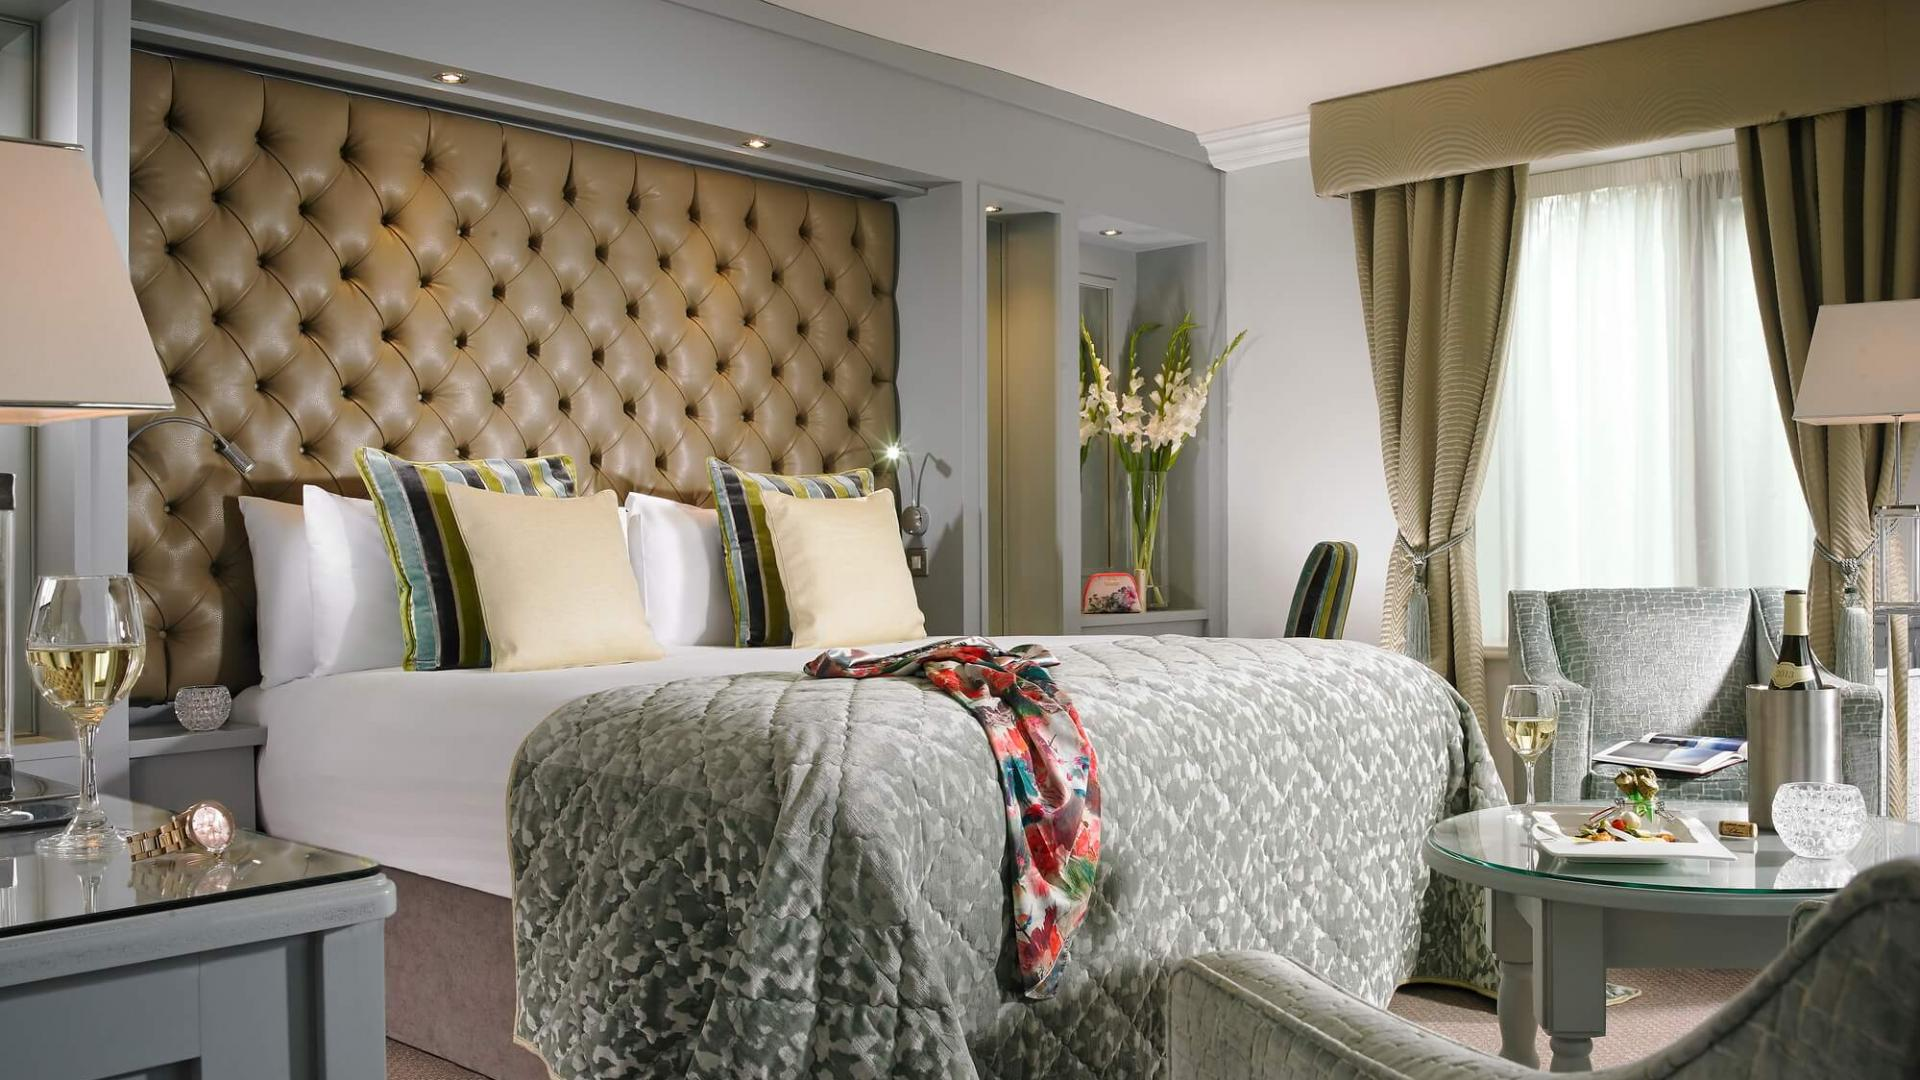 Places To Stay In Kilkenny Boutique Hotels Kilkenny Newpark Hotel